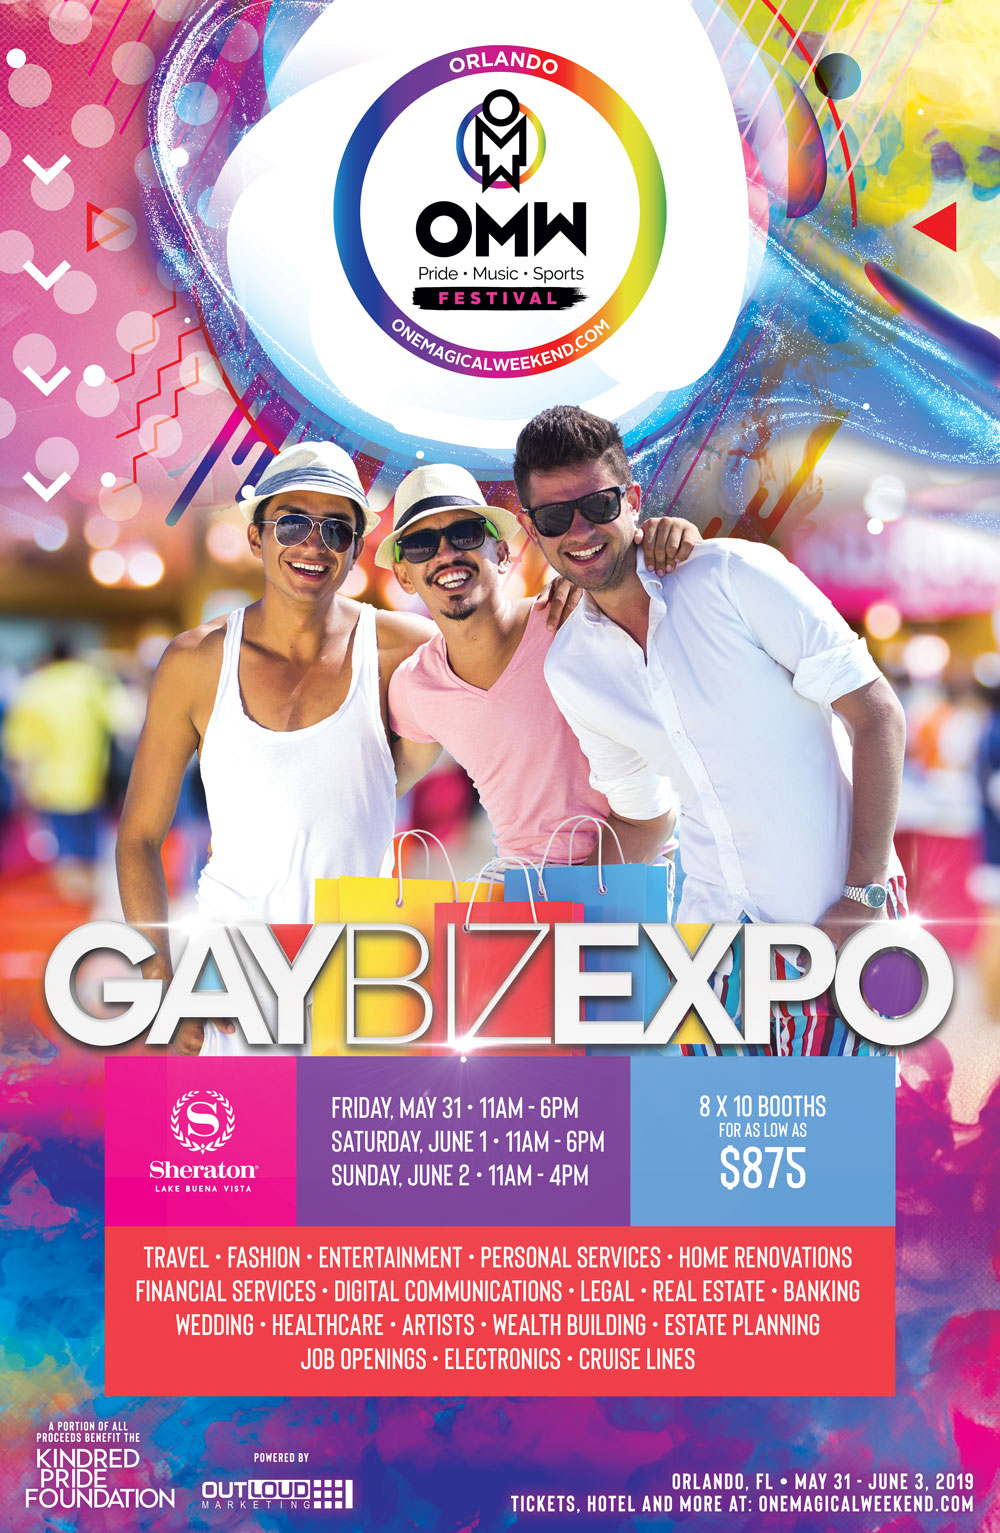 2019 OMW Gay Biz Expo - One Magical Weekend